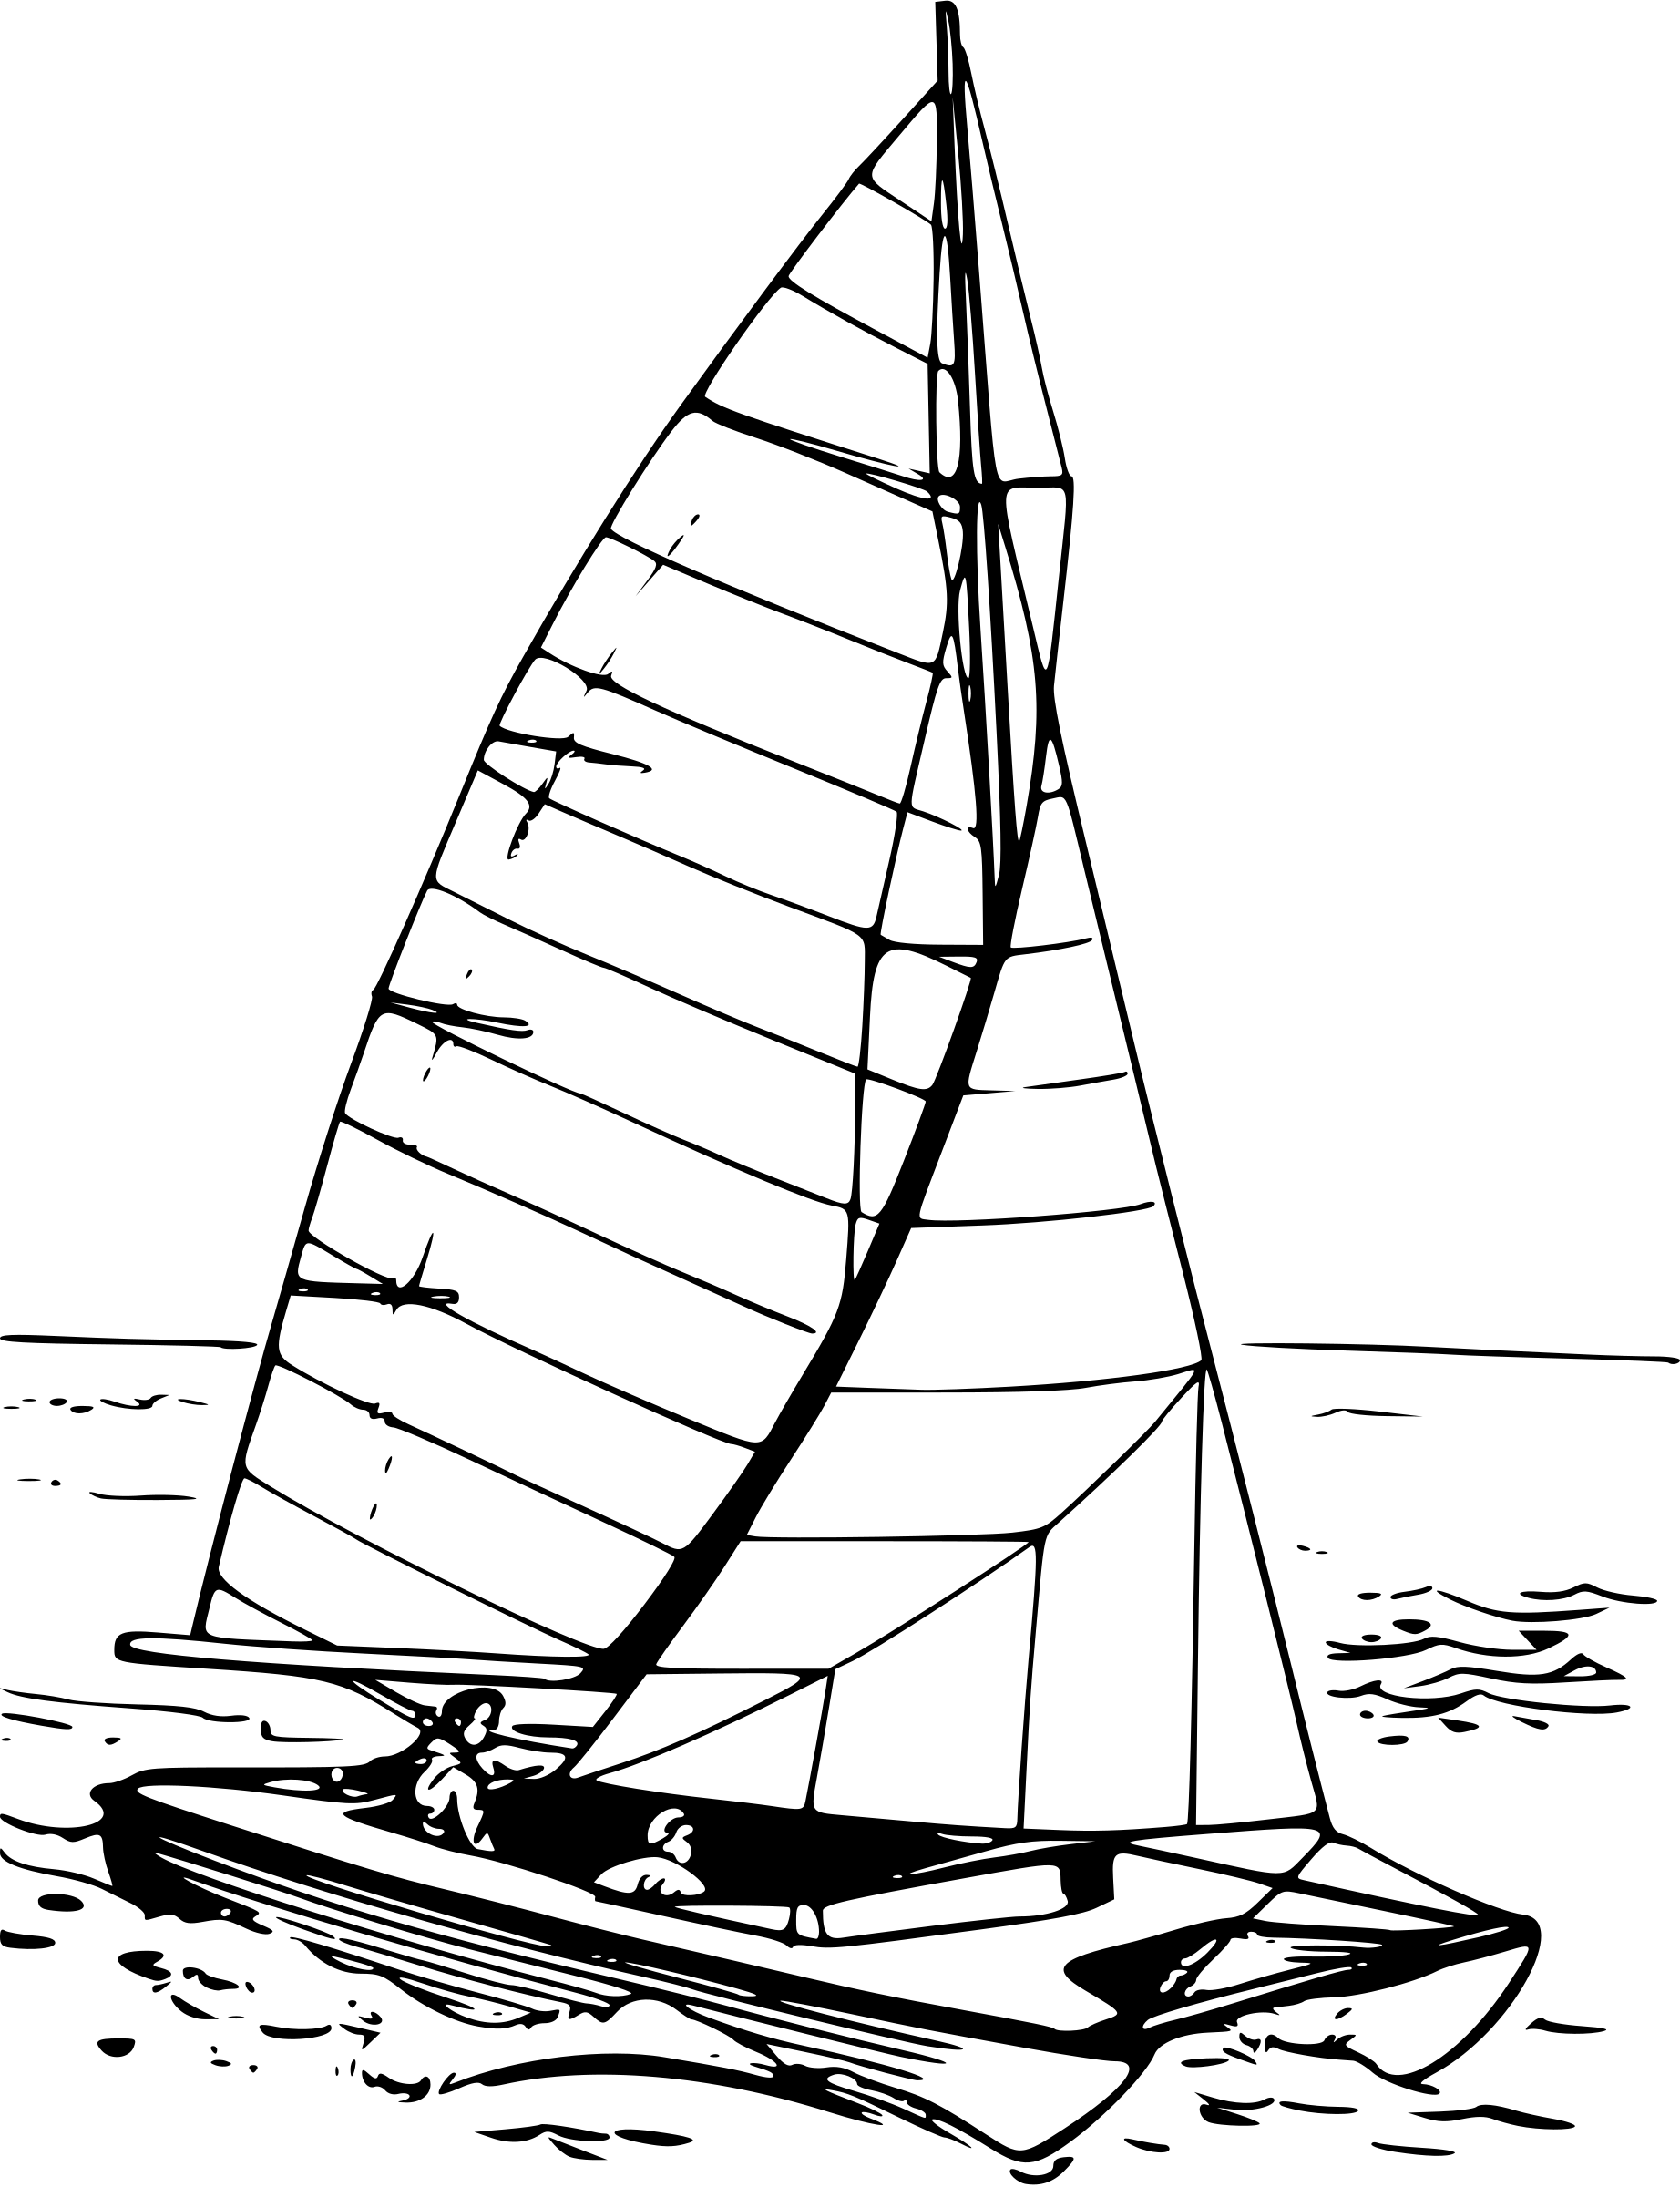 Sailboat On The Water Vector Clipart Image